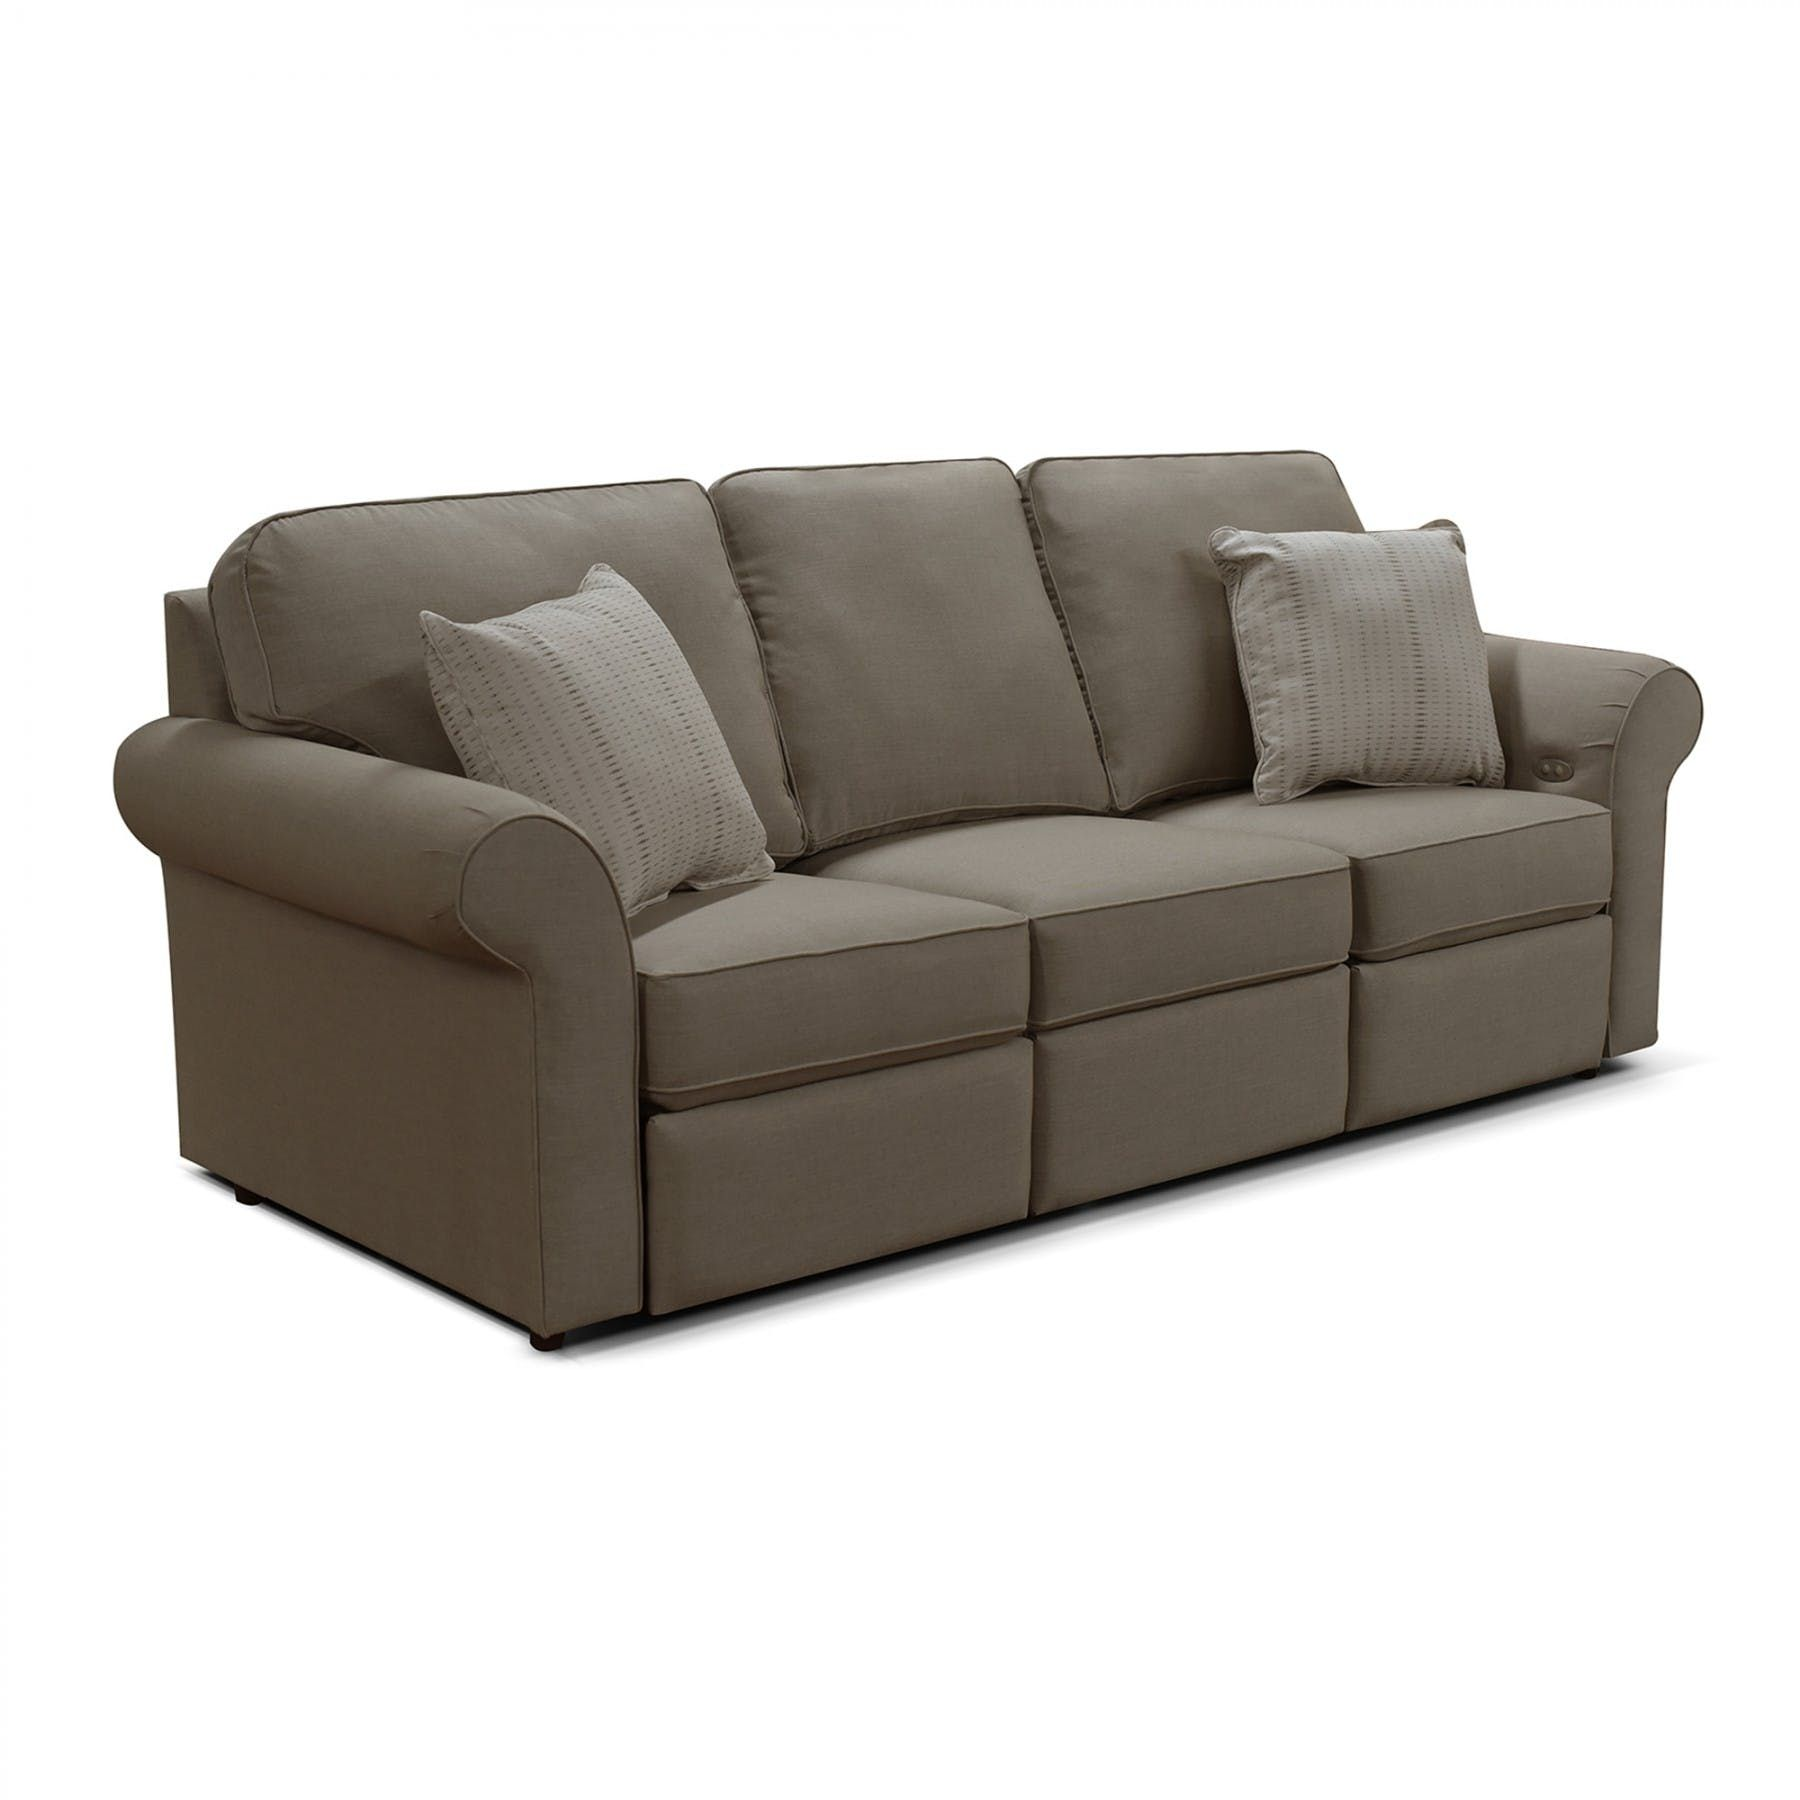 Best Sunbrella Natalie Power Reclining Sofa Sofas Living Room Bernie Phyl's Furniture By 400 x 300